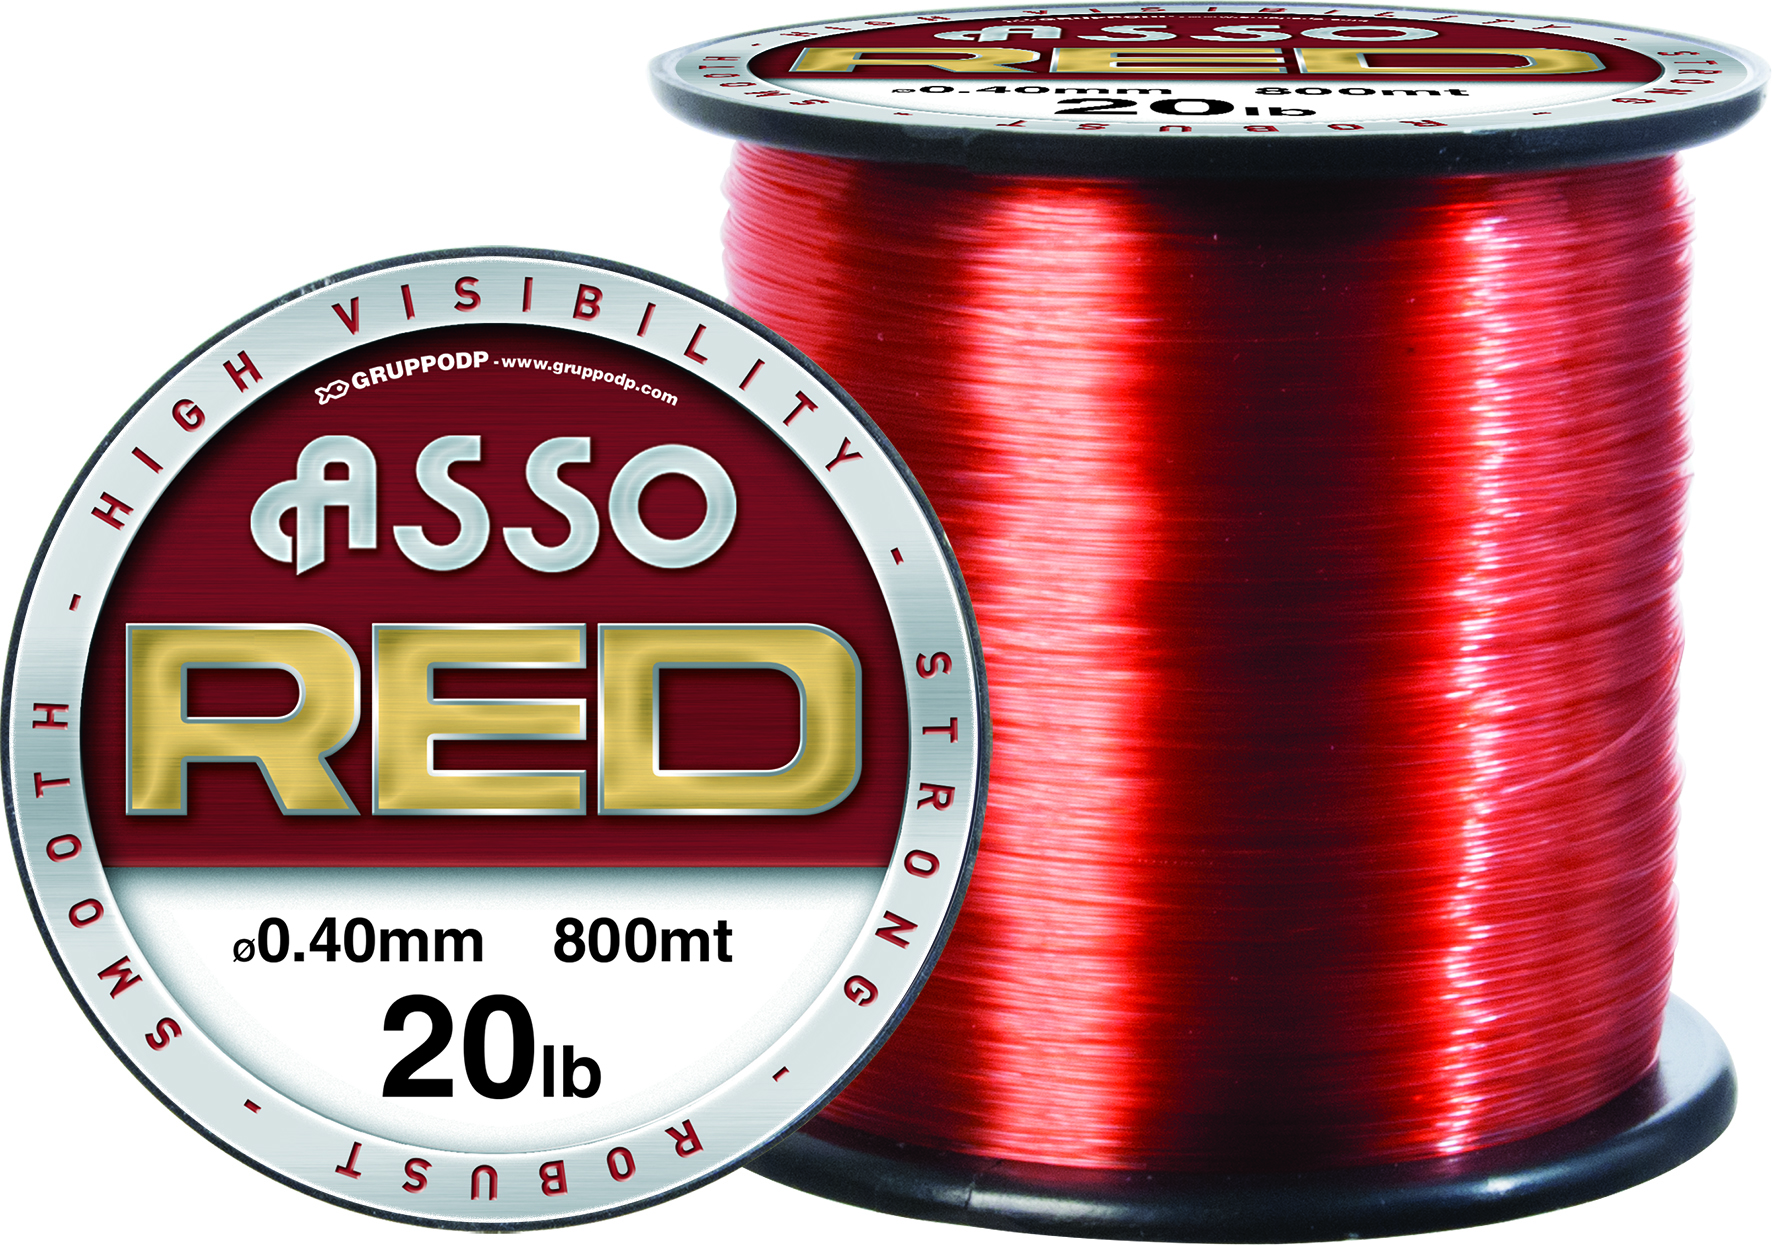 Asso RED Hi Vis Sea fishing line